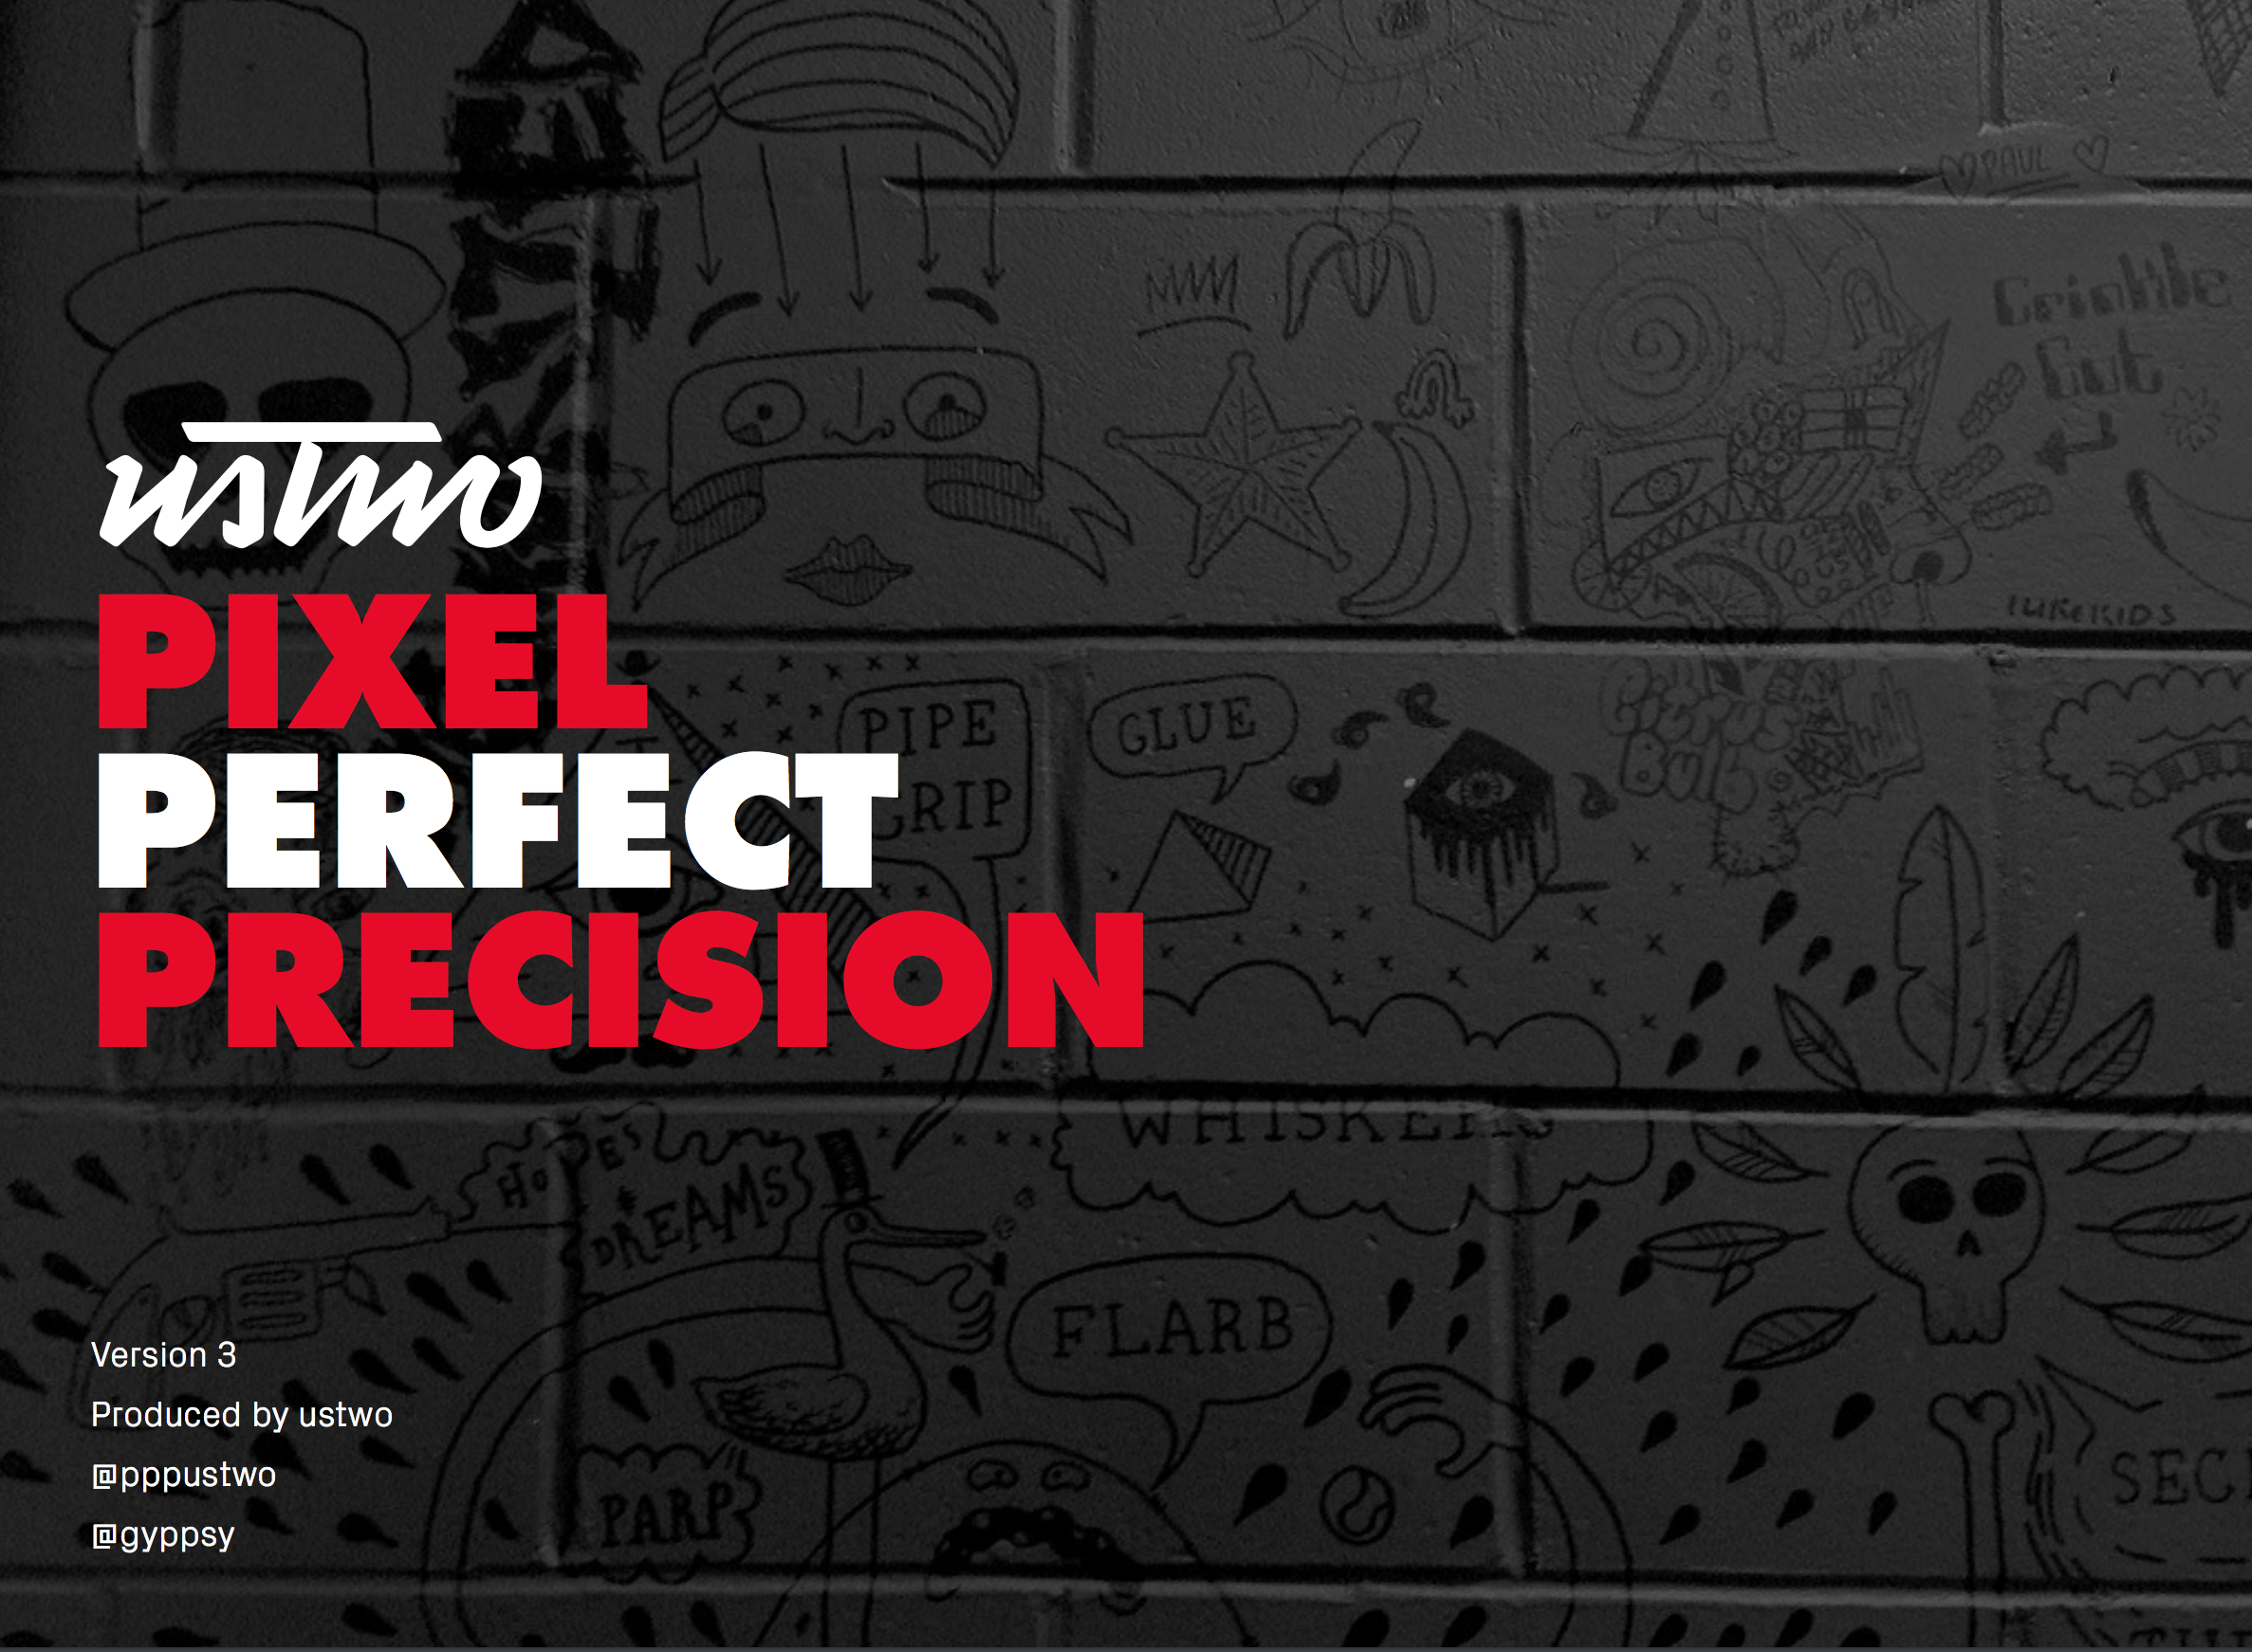 Pixel Perfect Precision Handbook 3 — Matt Gypps